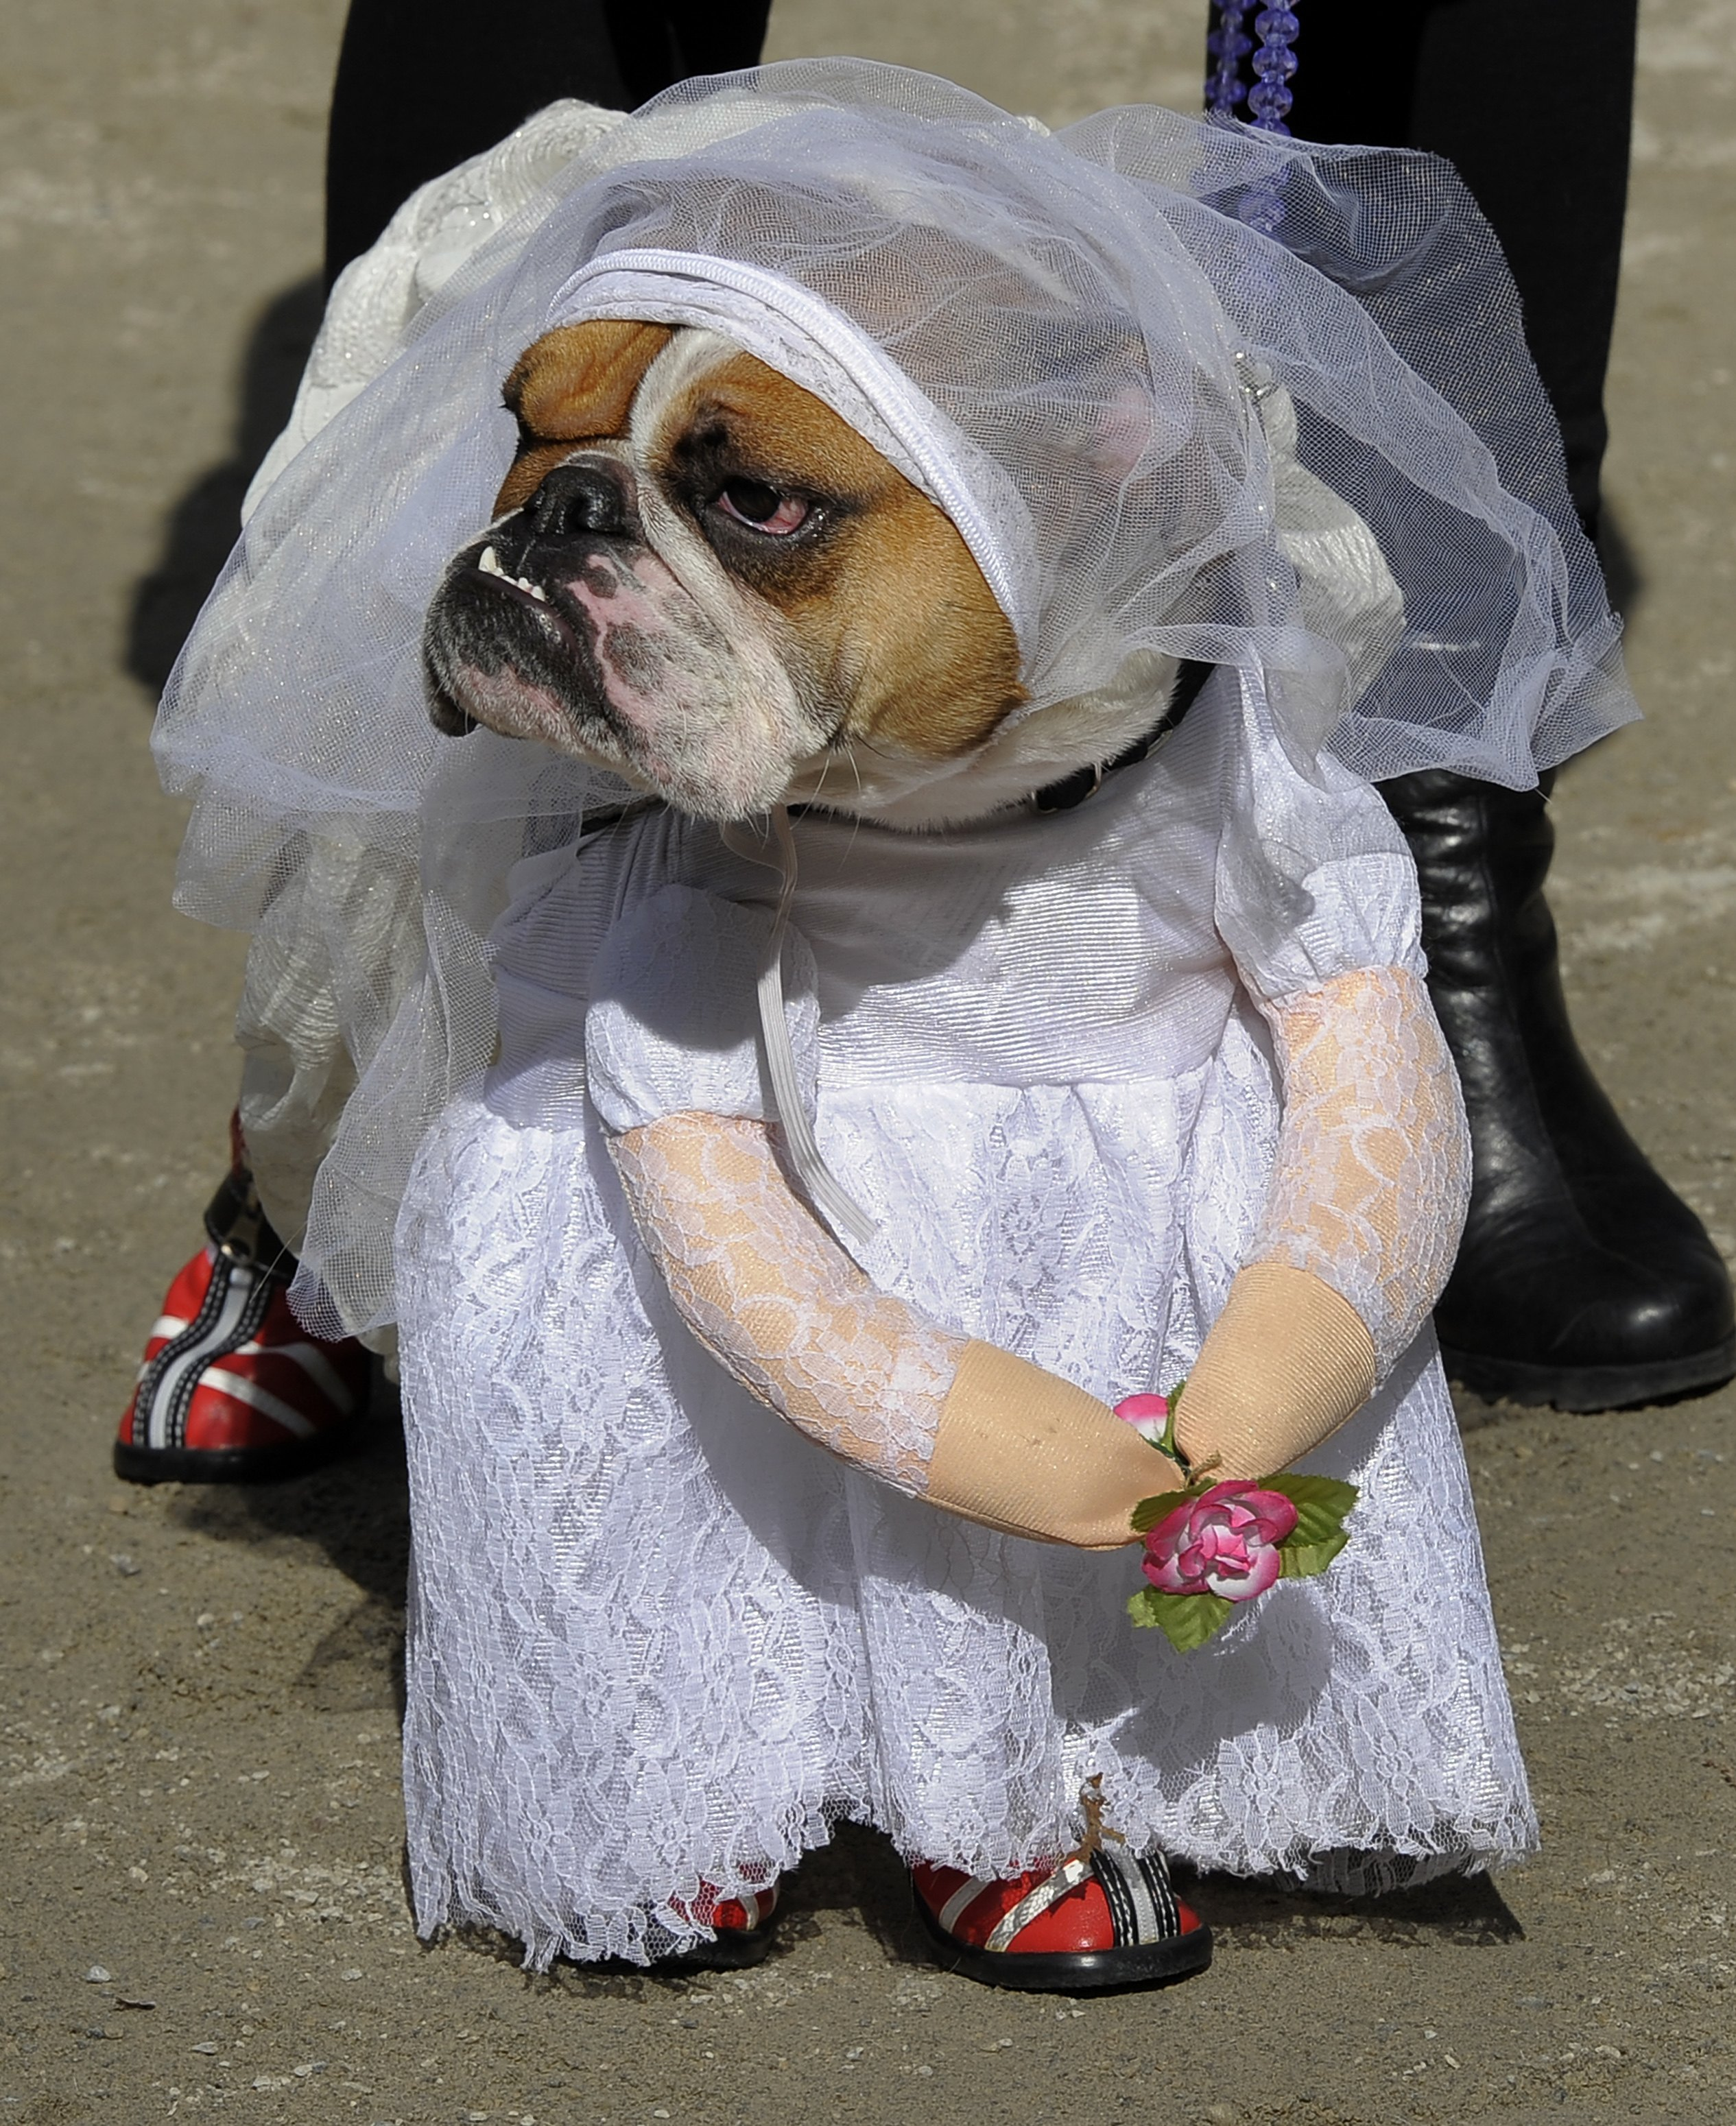 Gallery: Top 10 pictures of animals in clothes